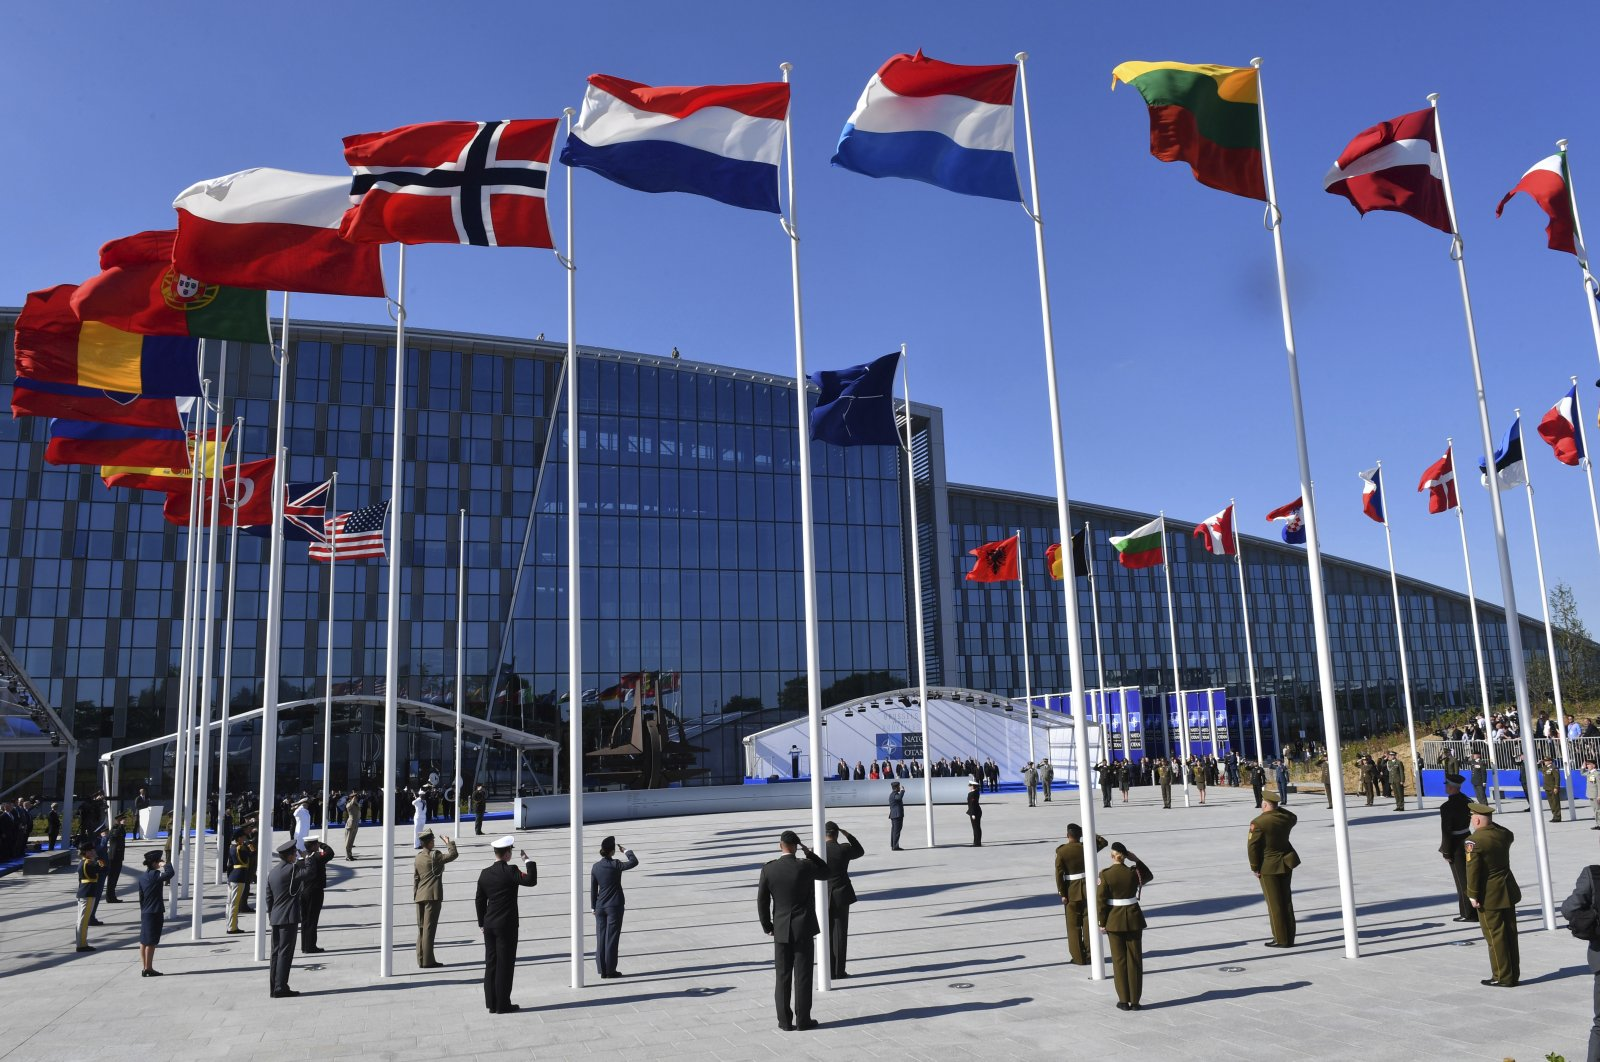 The flags of NATO member countries flutter during a NATO summit in Brussels, Belgium, May 25, 2017. (AP Photo)